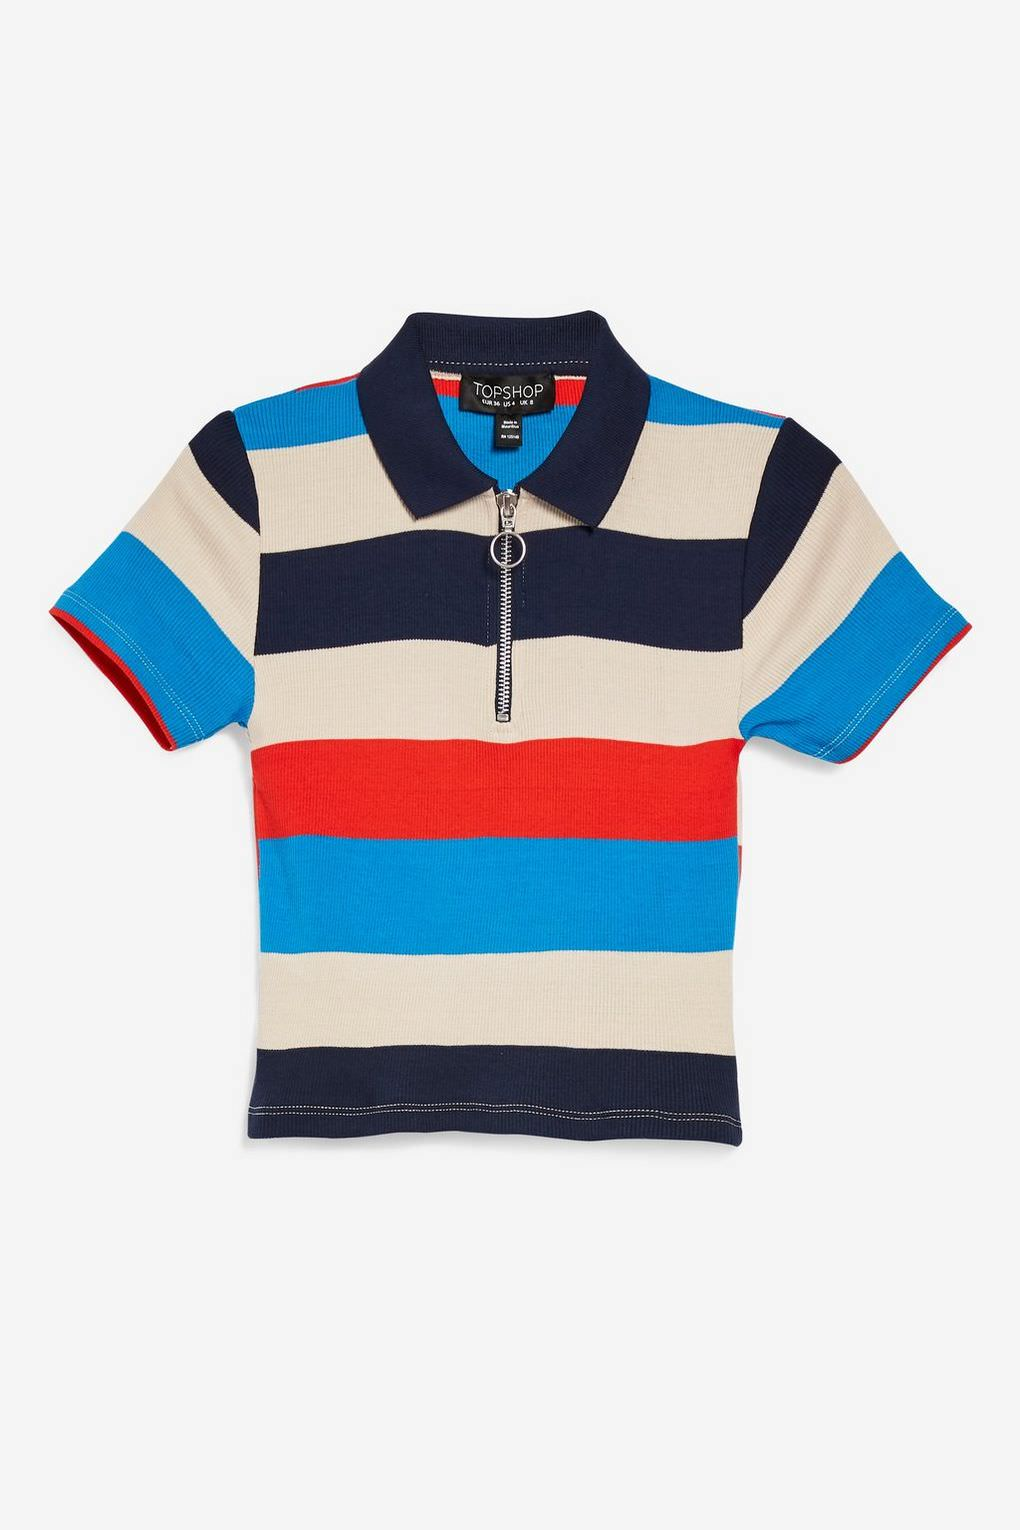 Topshop Striped Polo Top